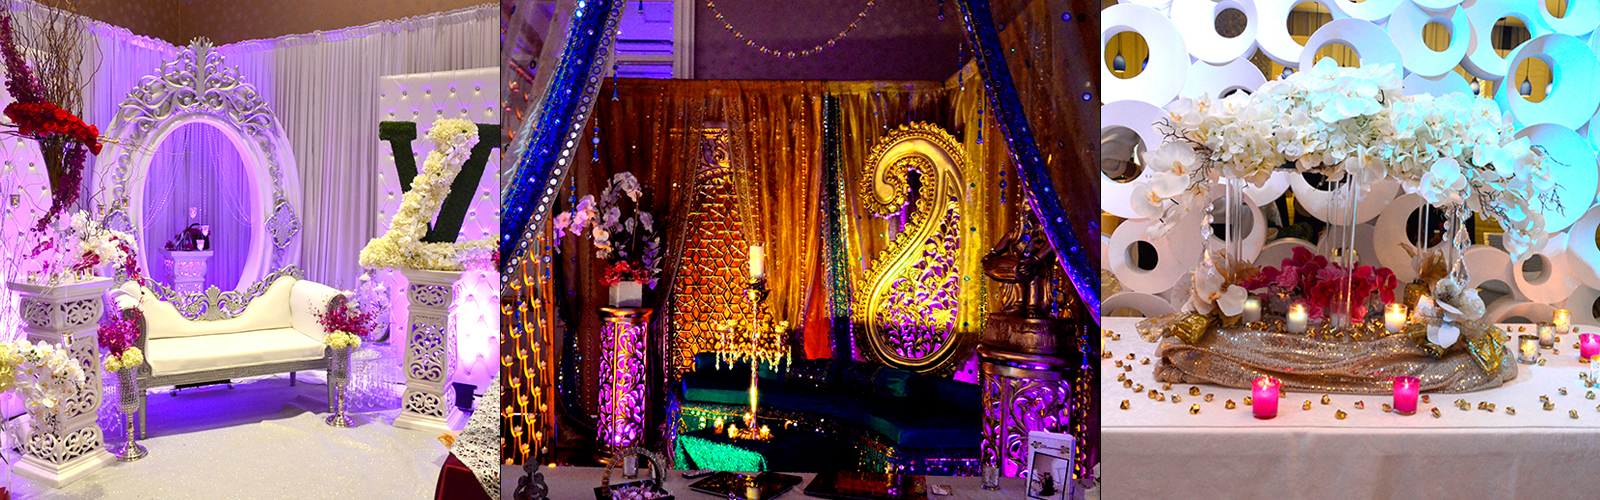 Wedding Event Decorations